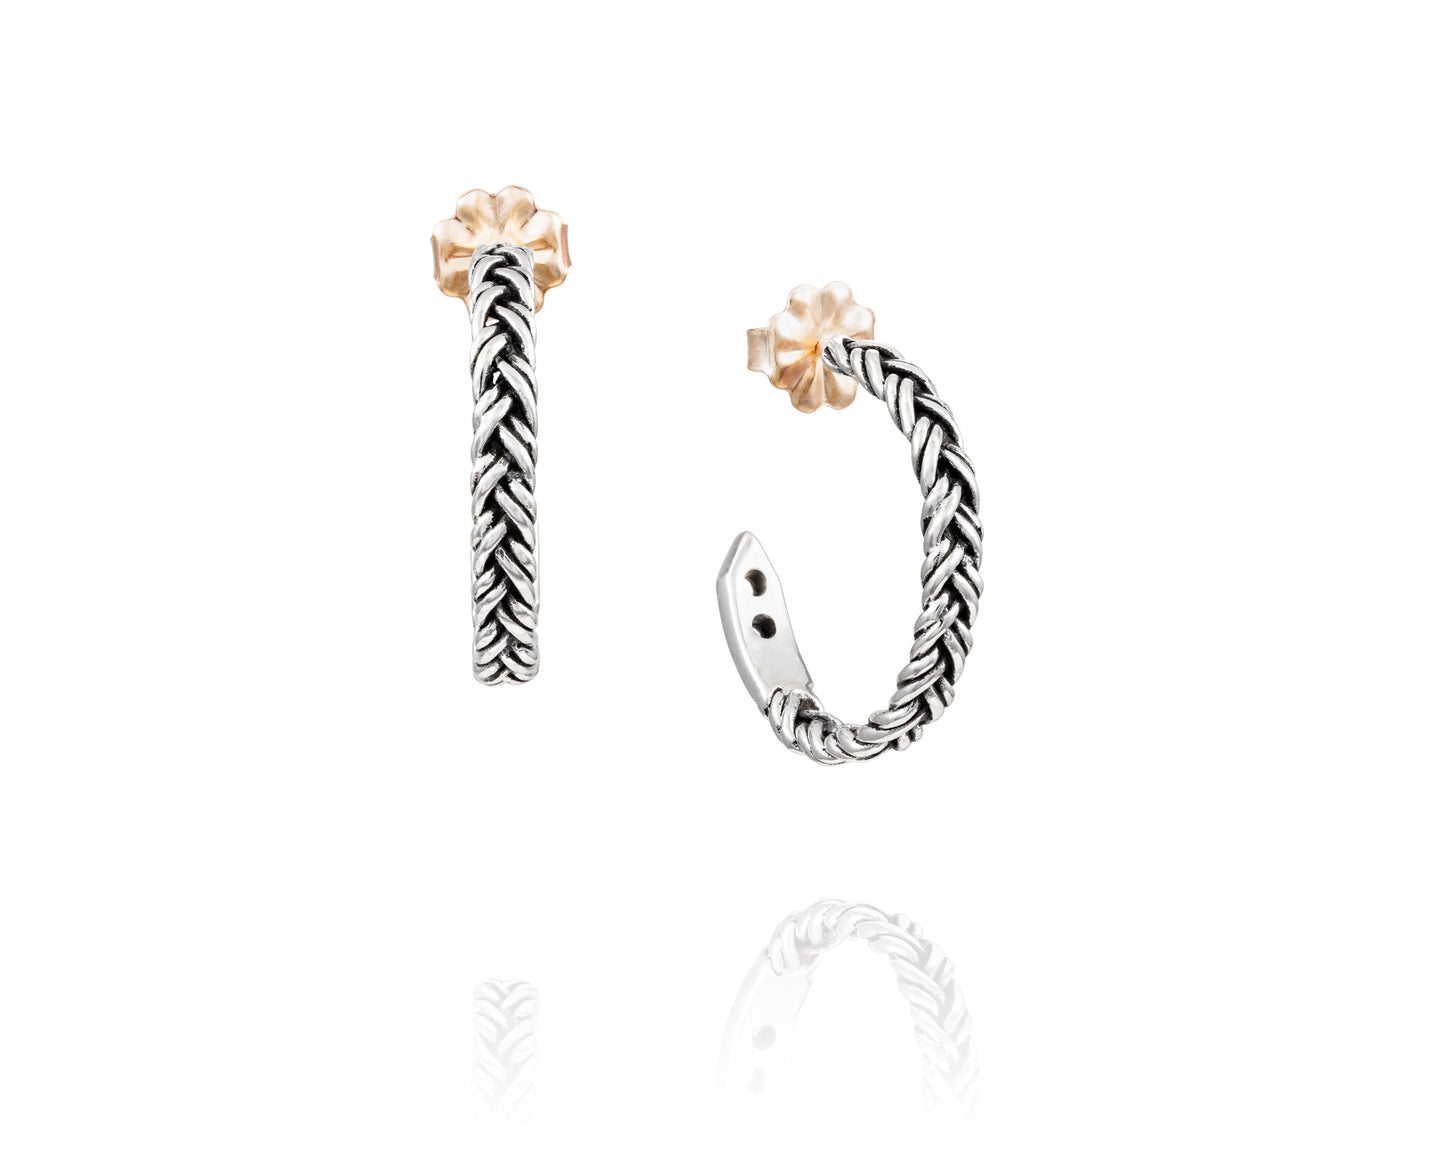 Small Braided Hoop Earrings